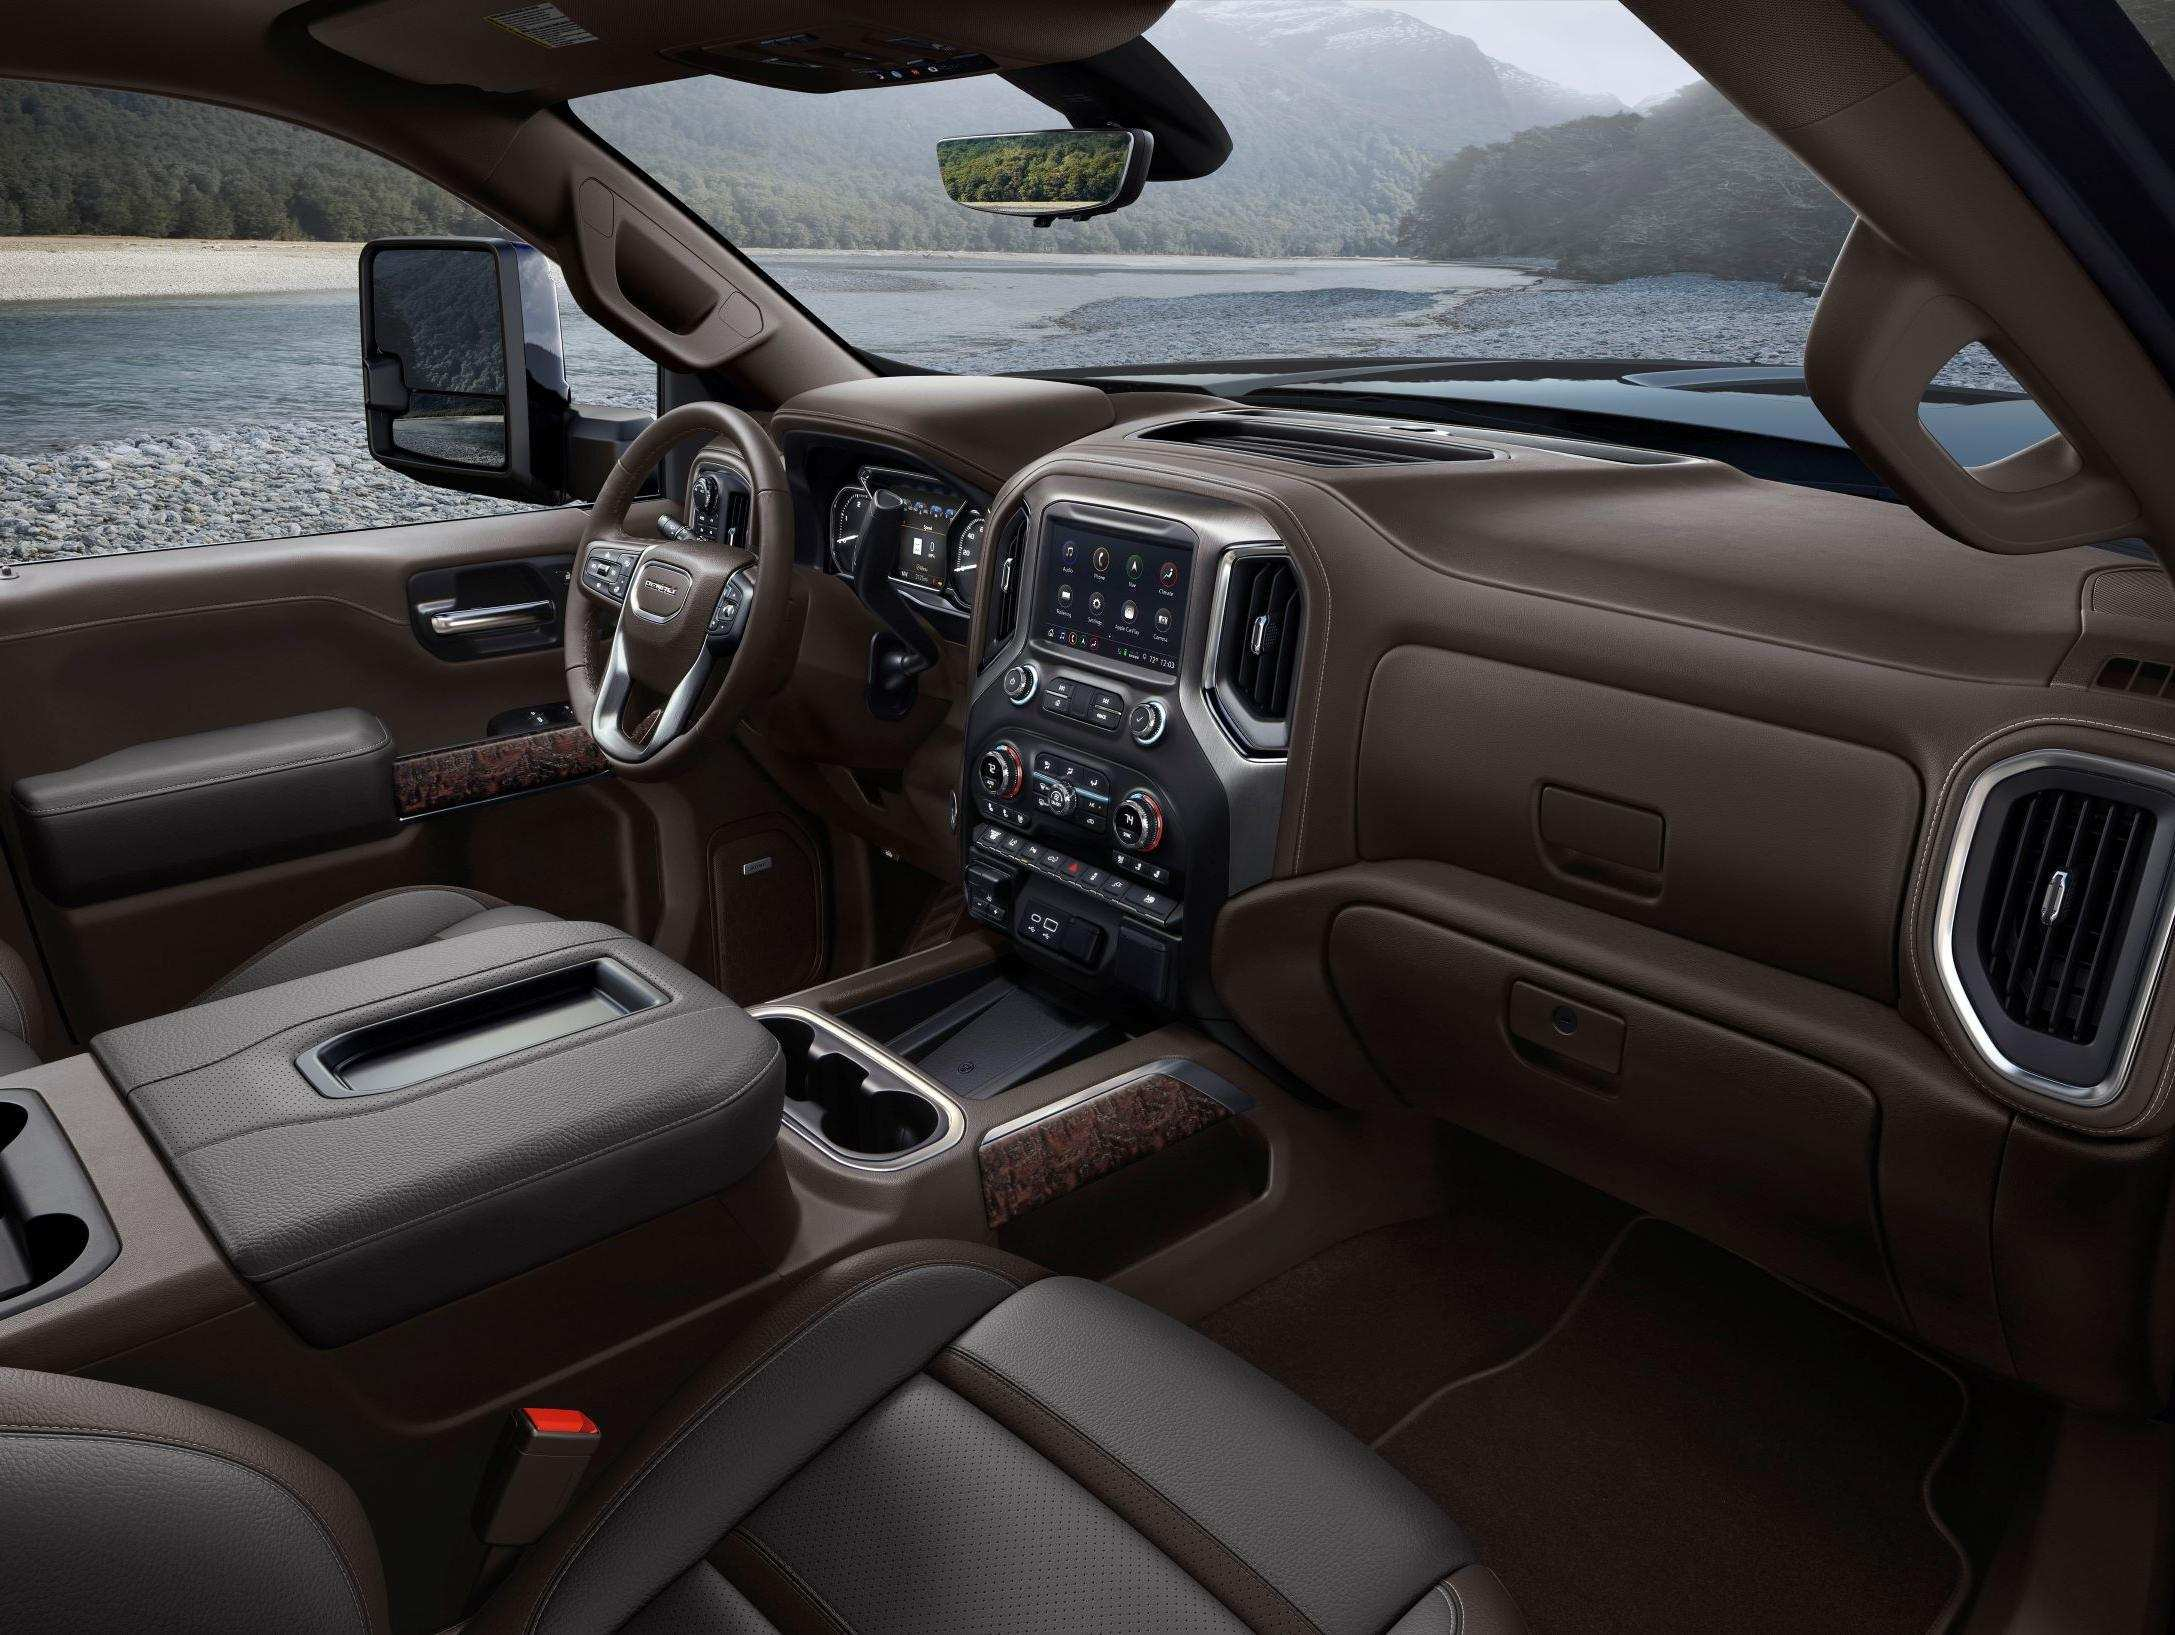 42 New 2020 Gmc Sierra Hd Interior Style by 2020 Gmc Sierra Hd Interior